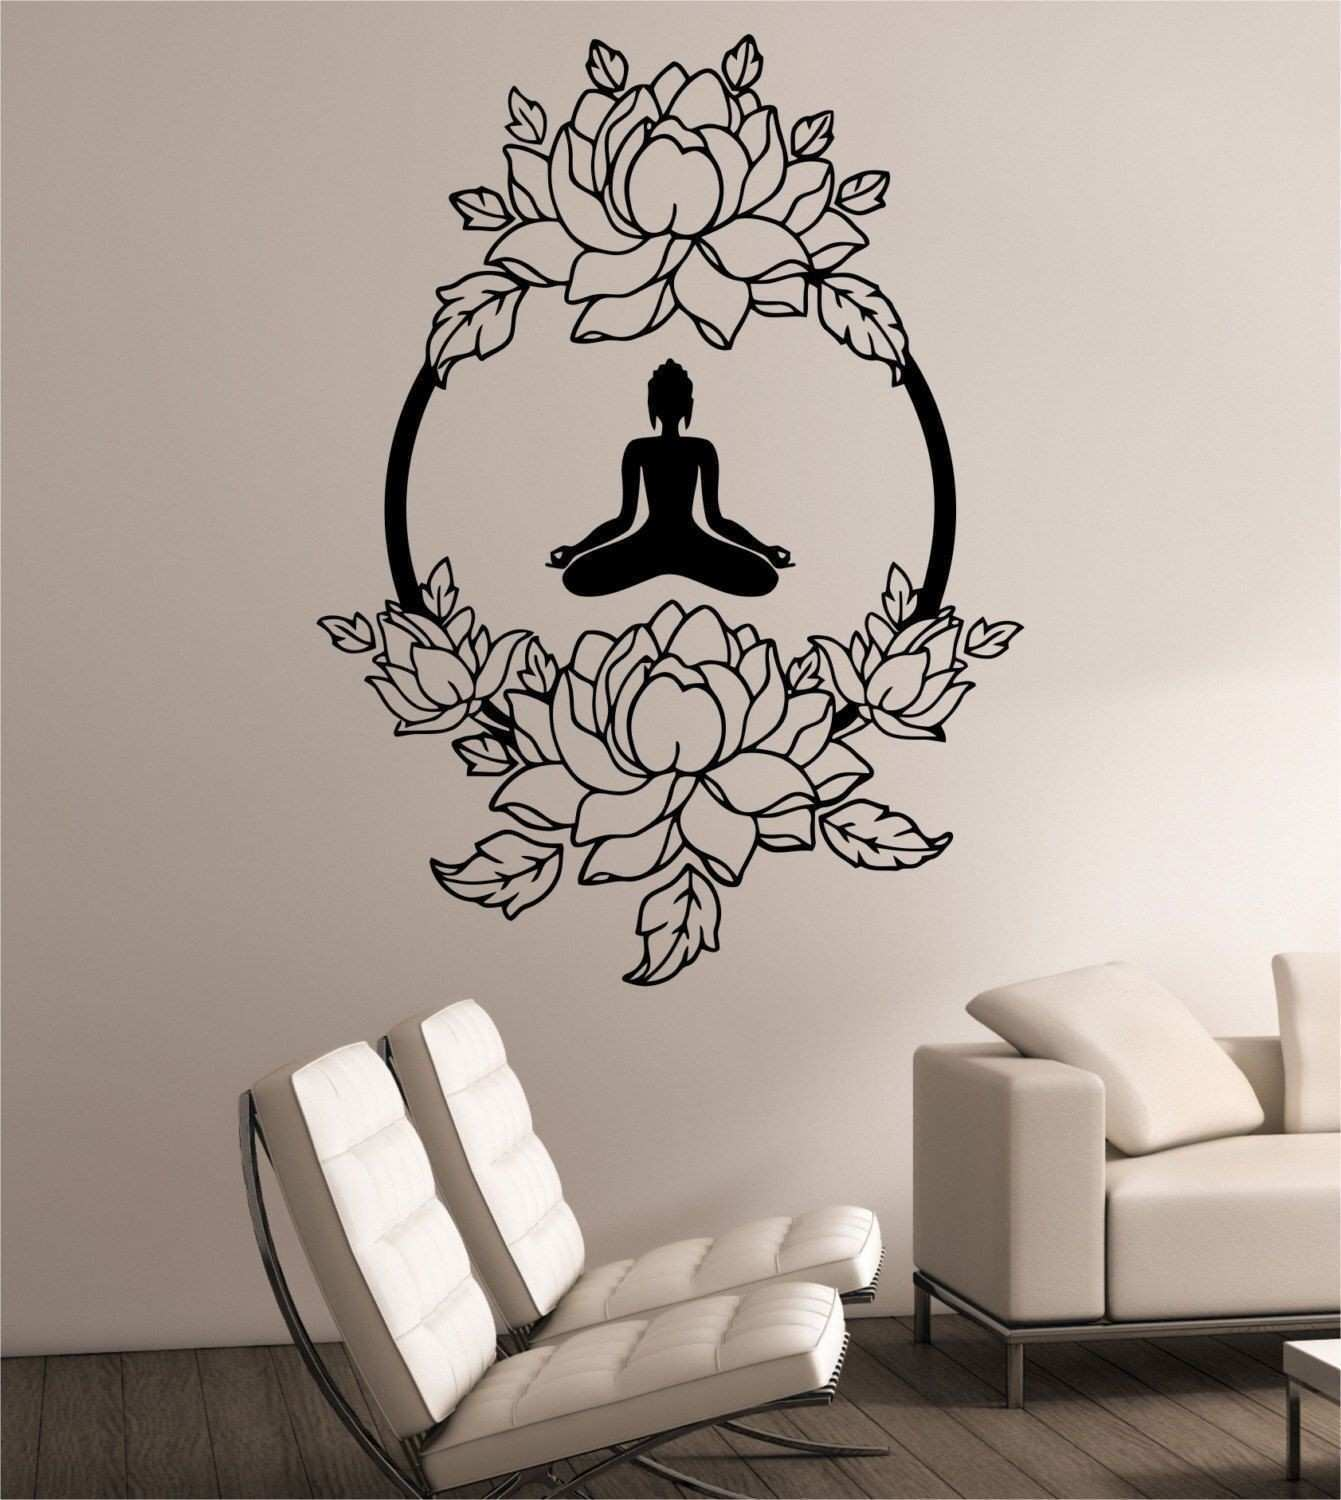 Inspirational Wall Decals for Family